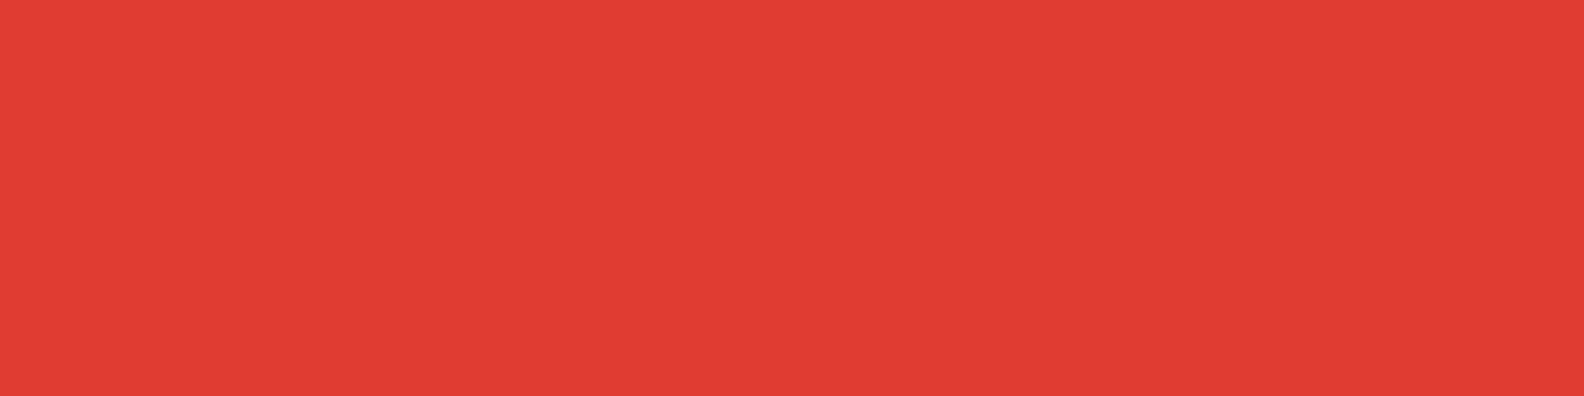 1584x396 CG Red Solid Color Background